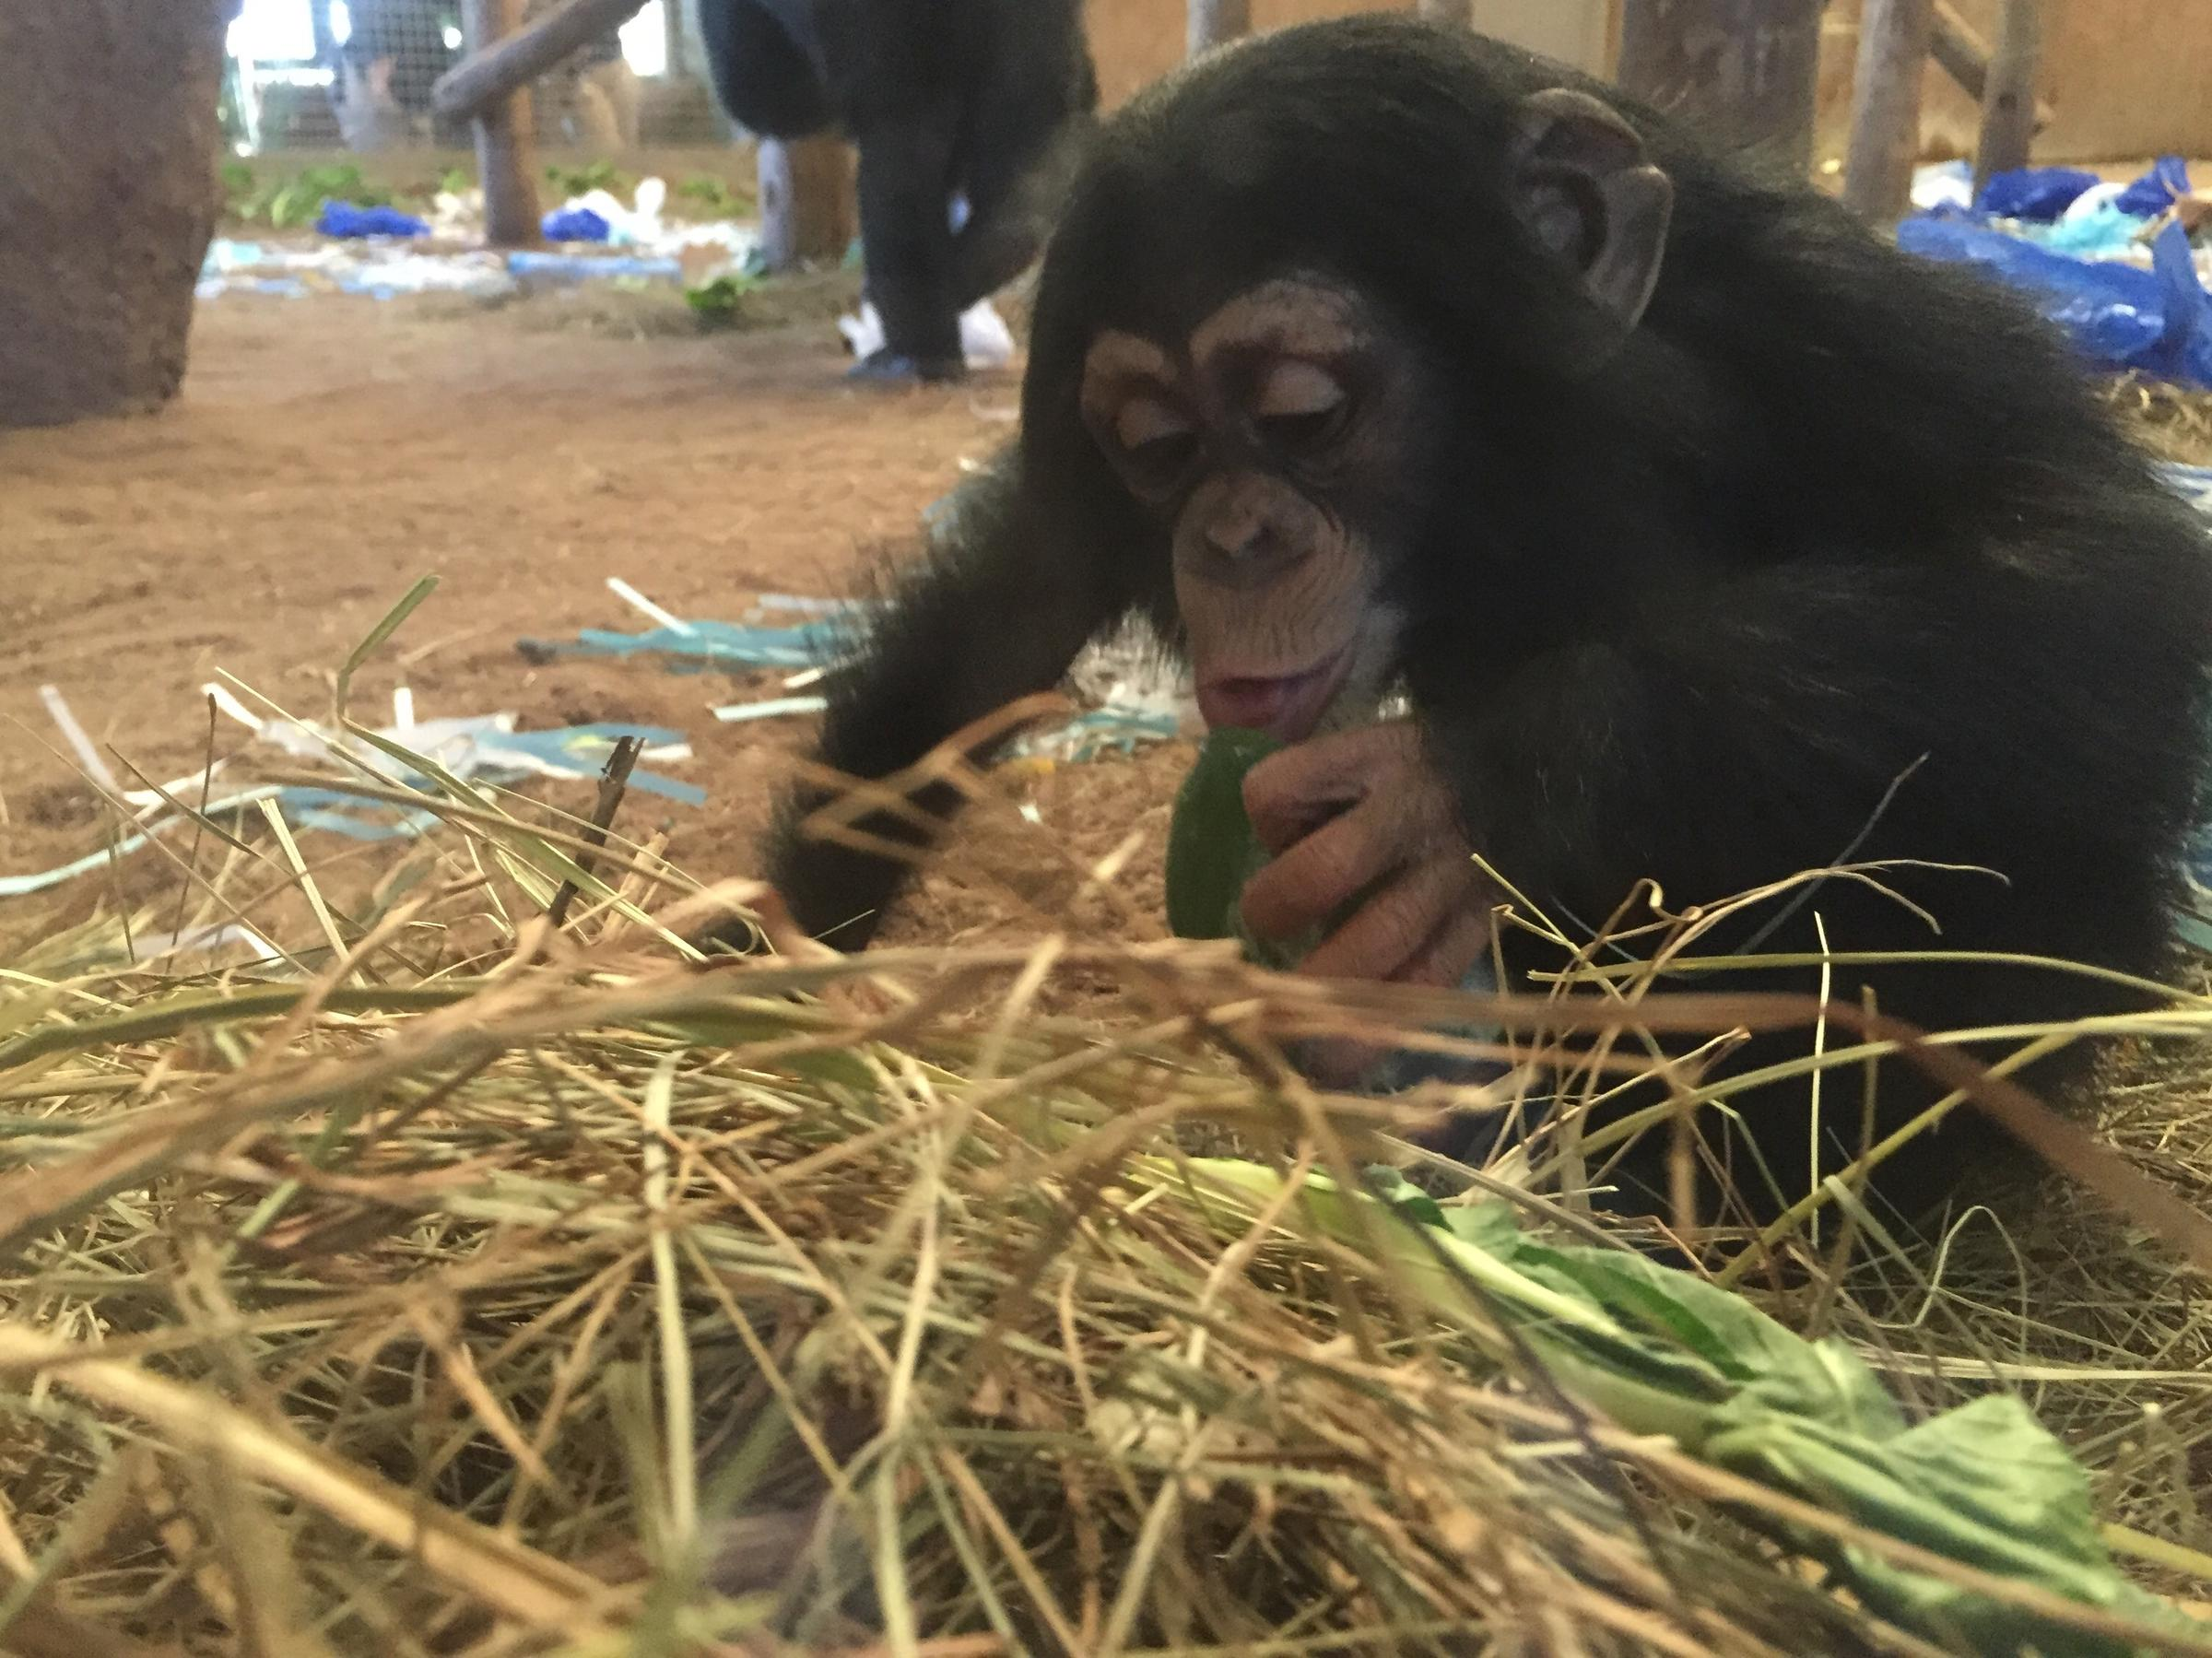 Tulsa Zoos Youngest Chimp Turns 1 Year Old Public Radio Tulsa